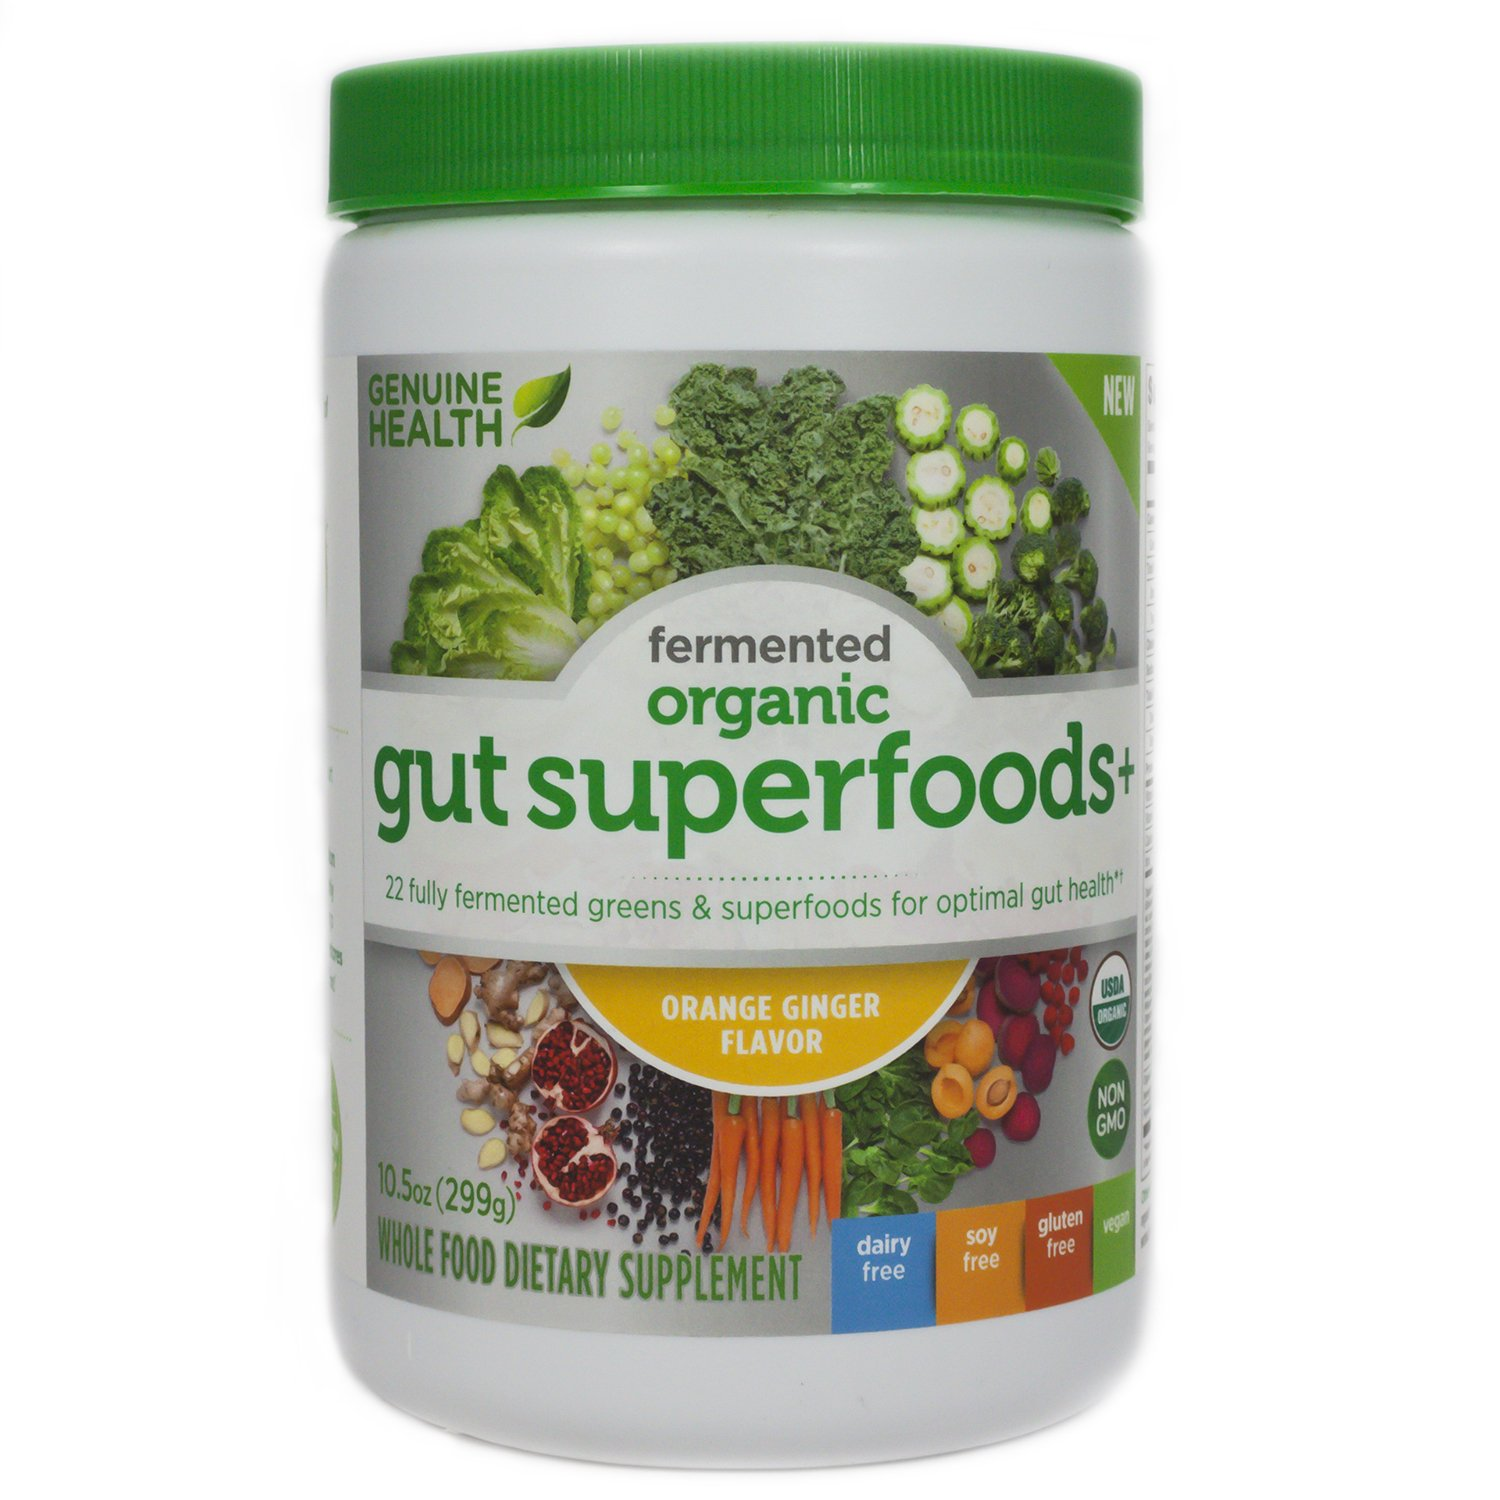 Genuine Health Fermented Organic Gut Superfoods+, Orange Ginger, 10.5 Ounce